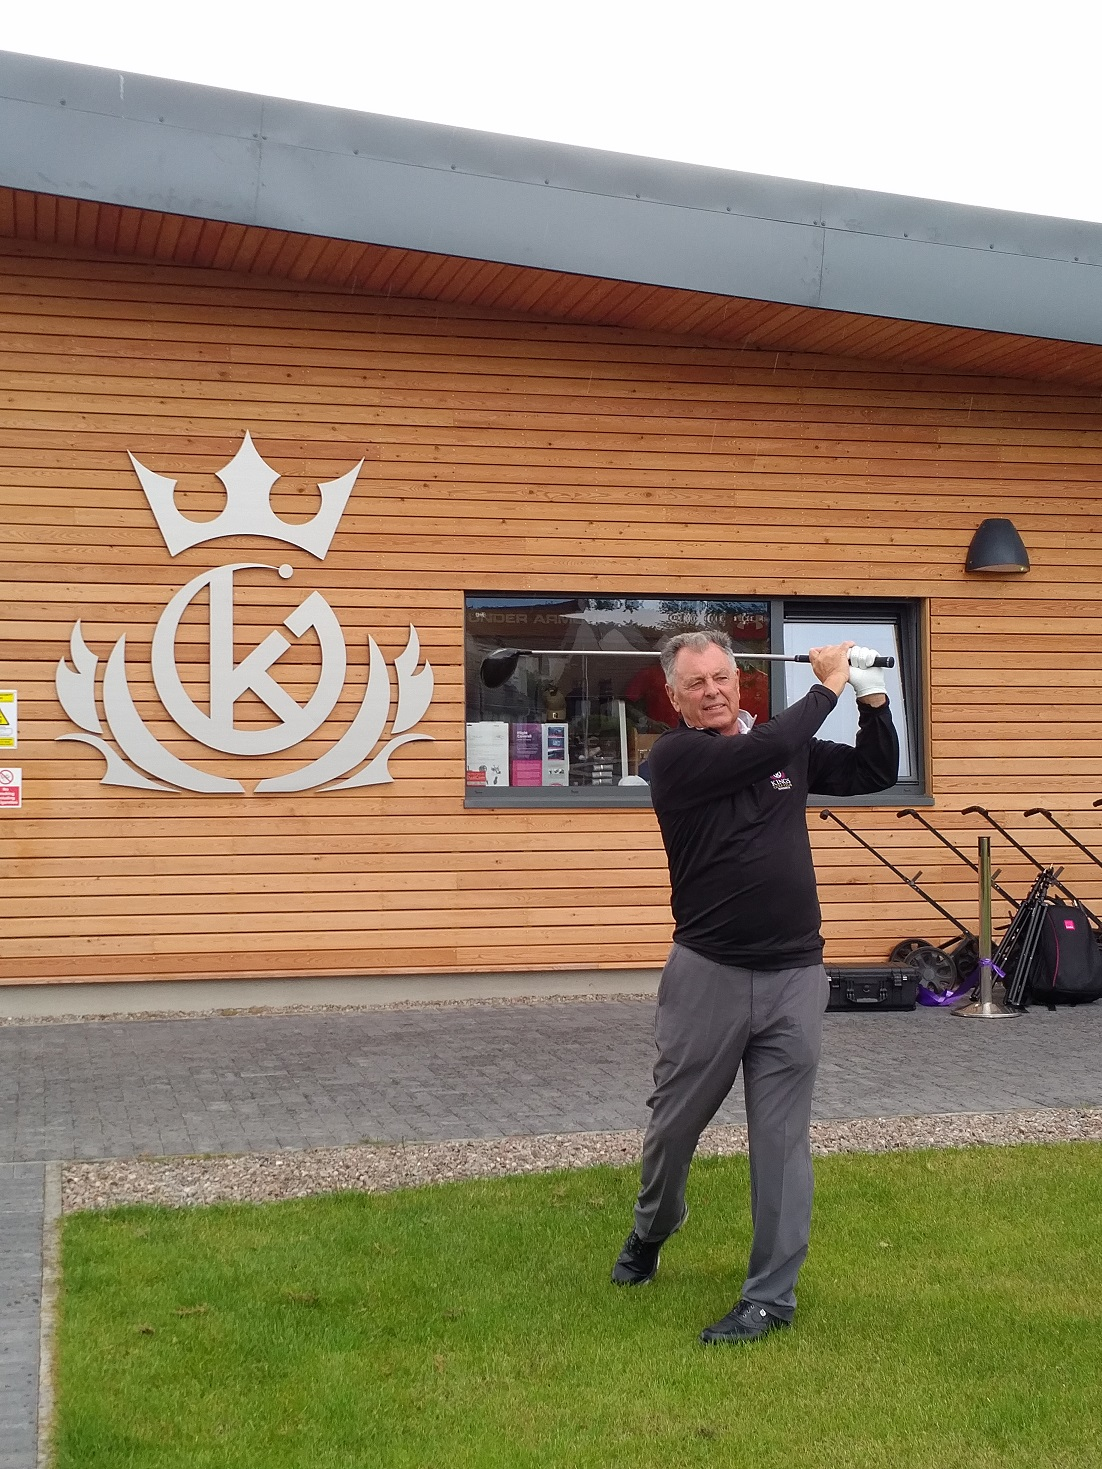 •	Bernard Gallacher OBE (3 times Ryder Cup European Captain) at Kings Golf Club, Inverness